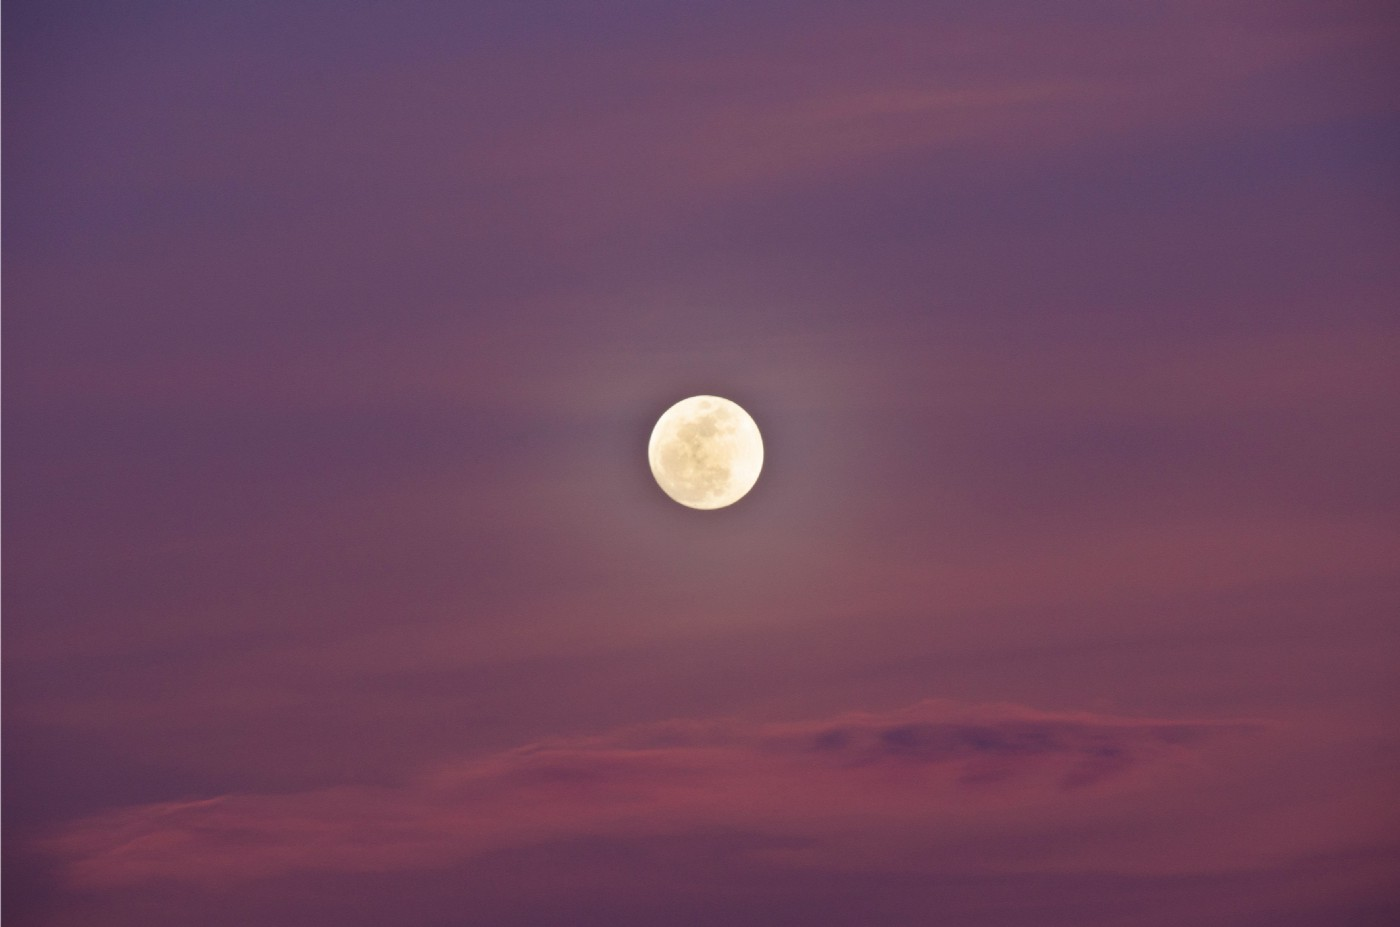 Full moon against pink-purple sky.